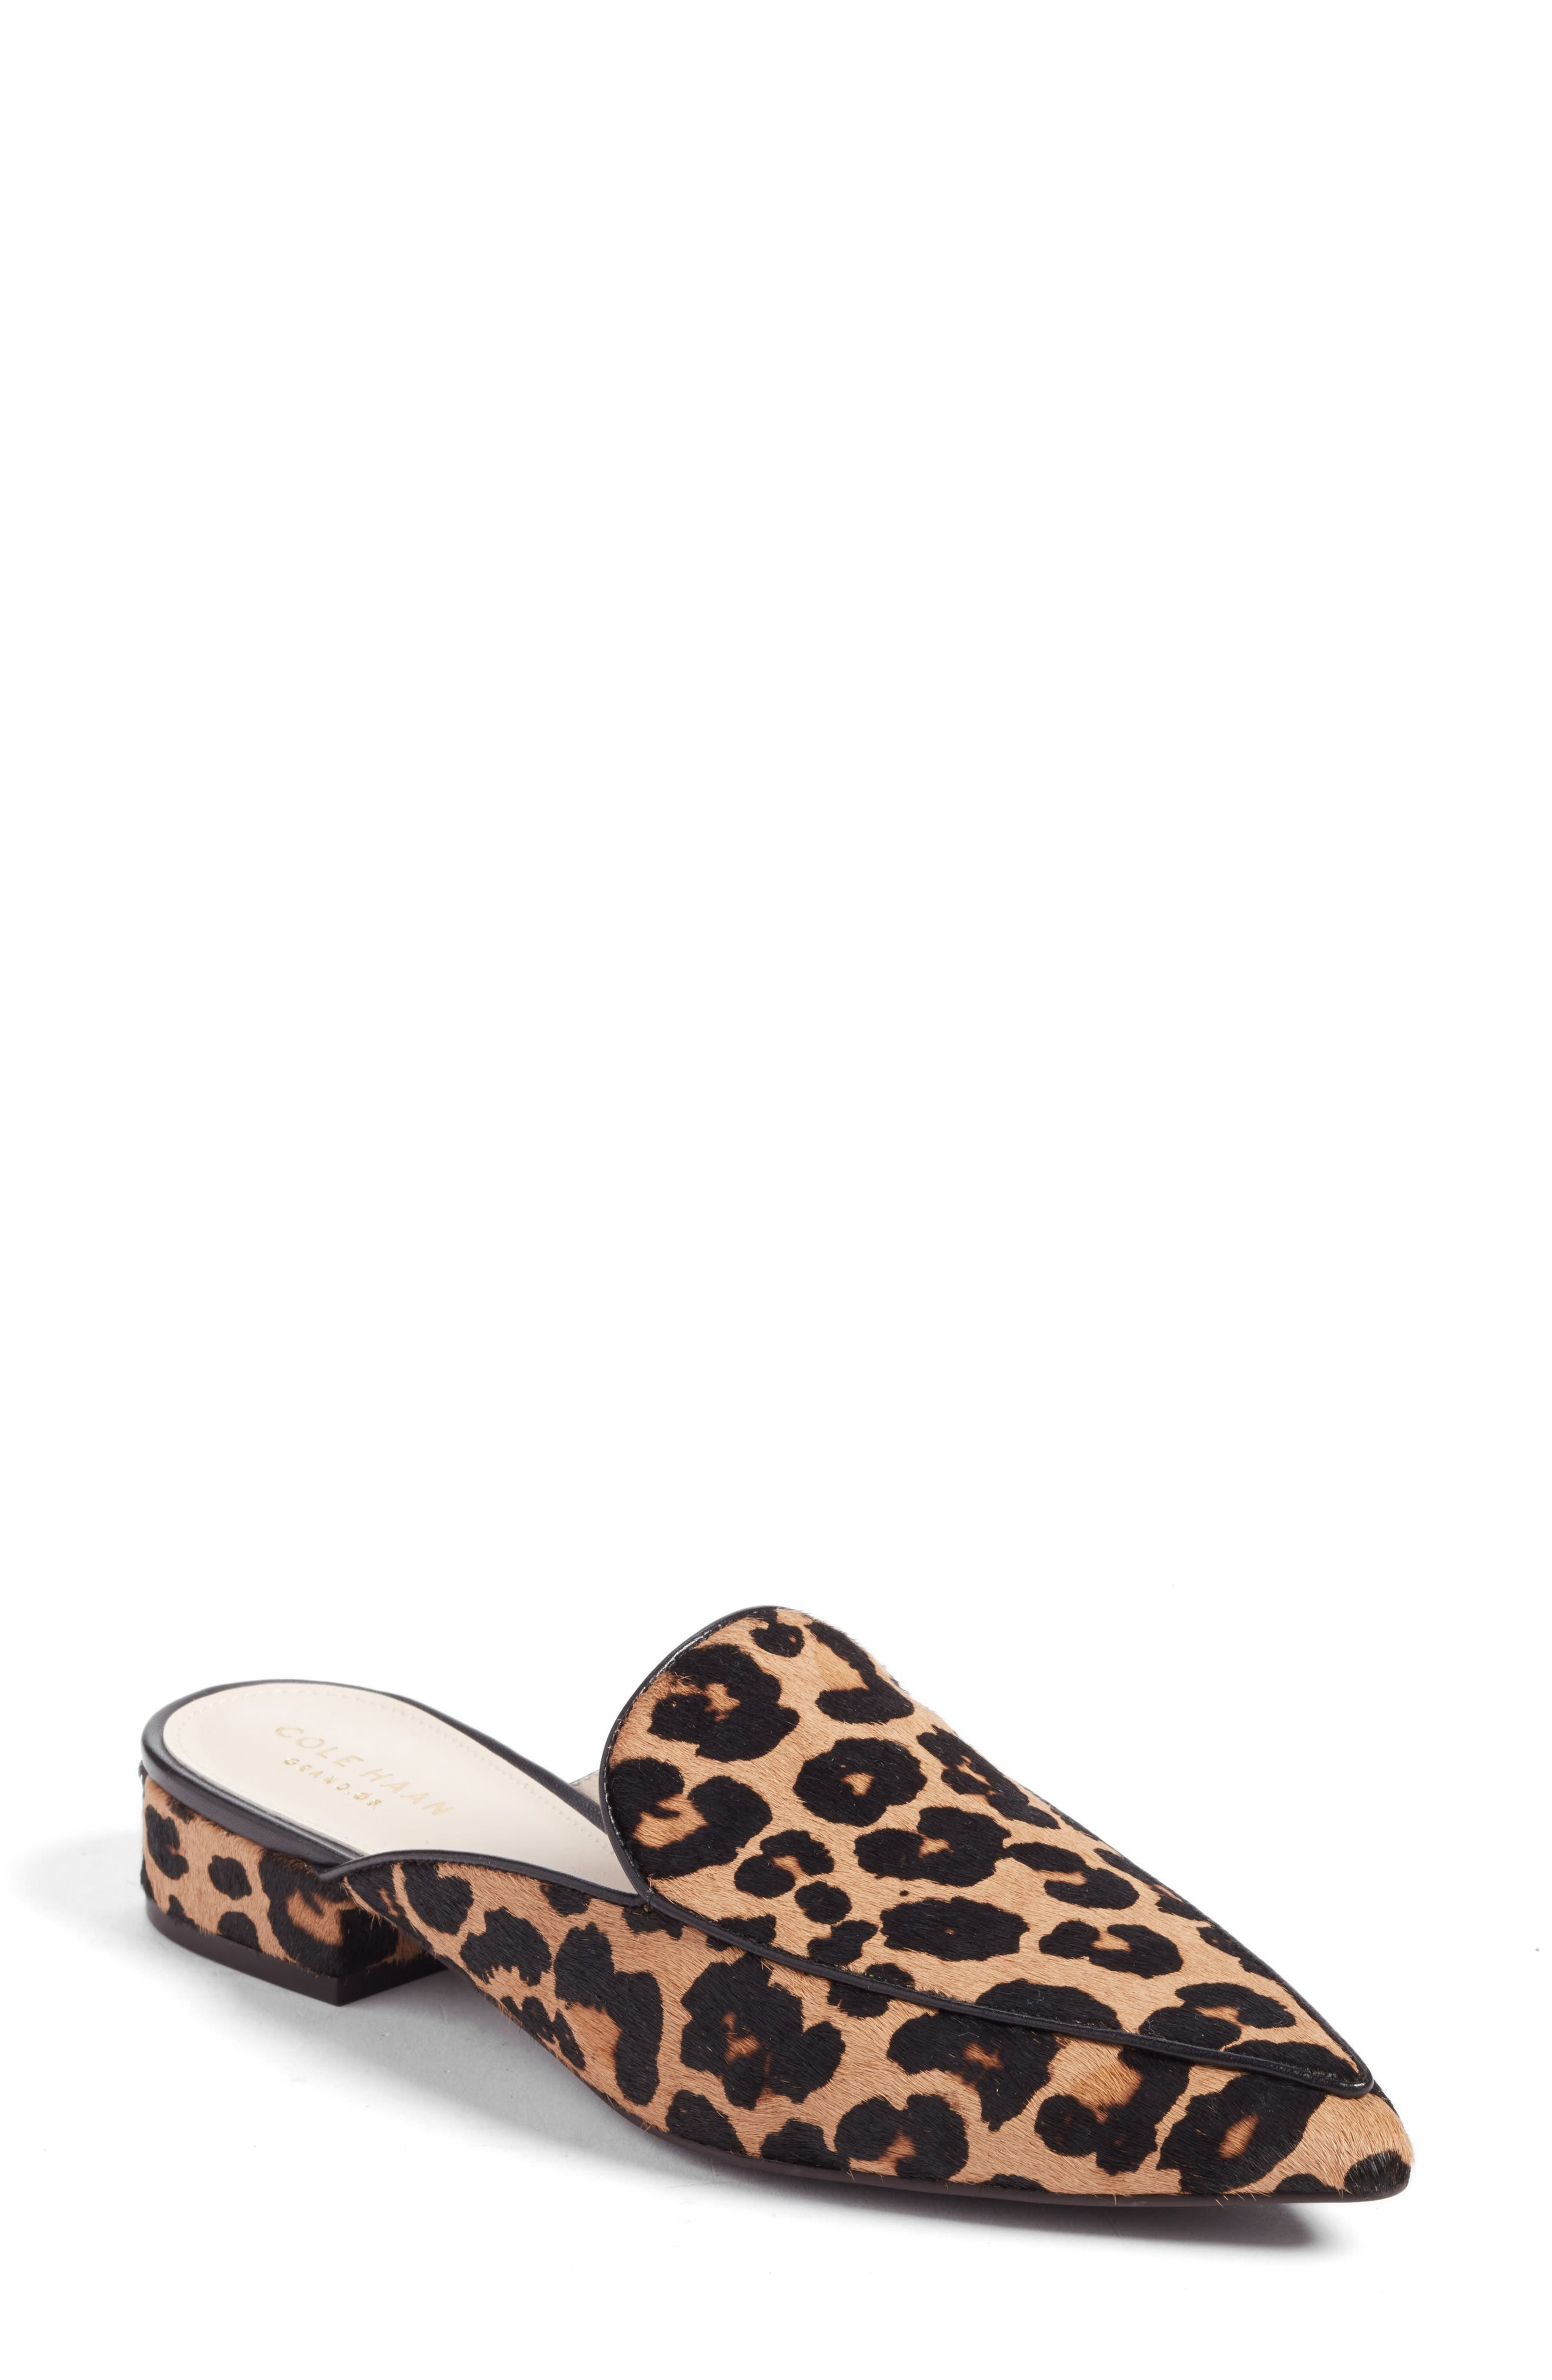 Piper Loafer Mule,                         Main,                         color, Ocelot Print Calf Hair